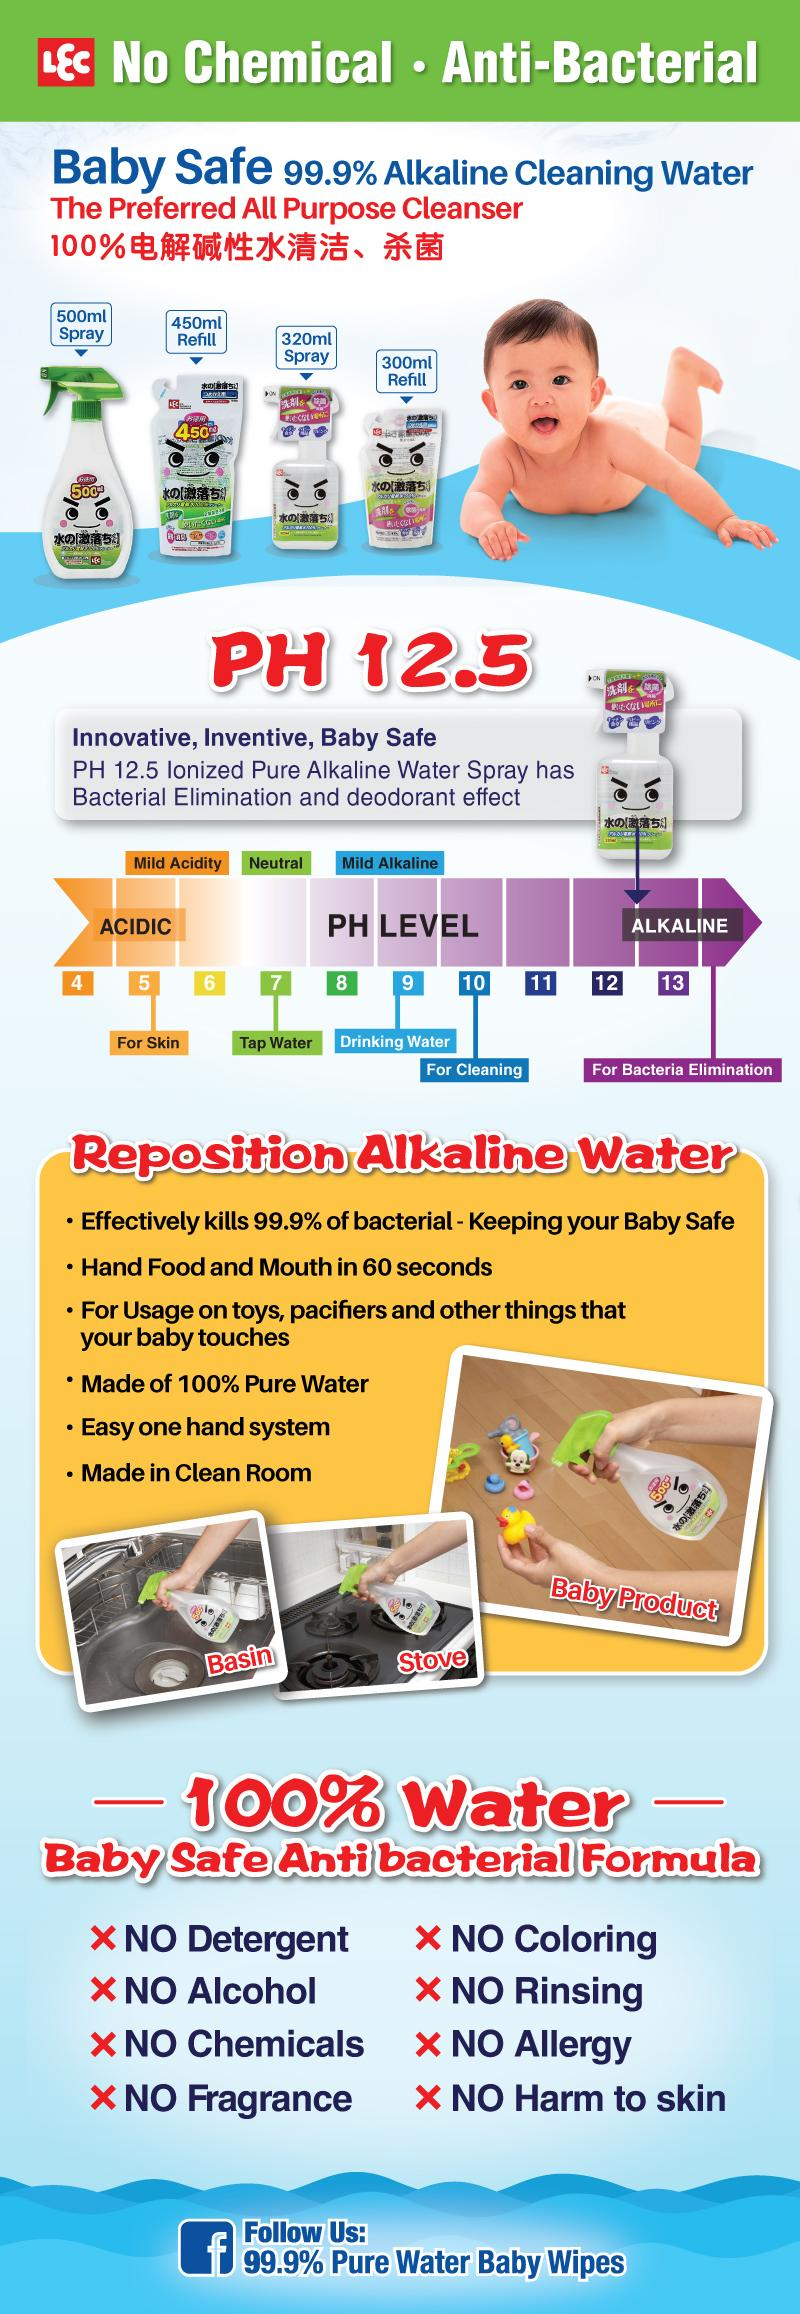 Alkaline-product-description.jpg